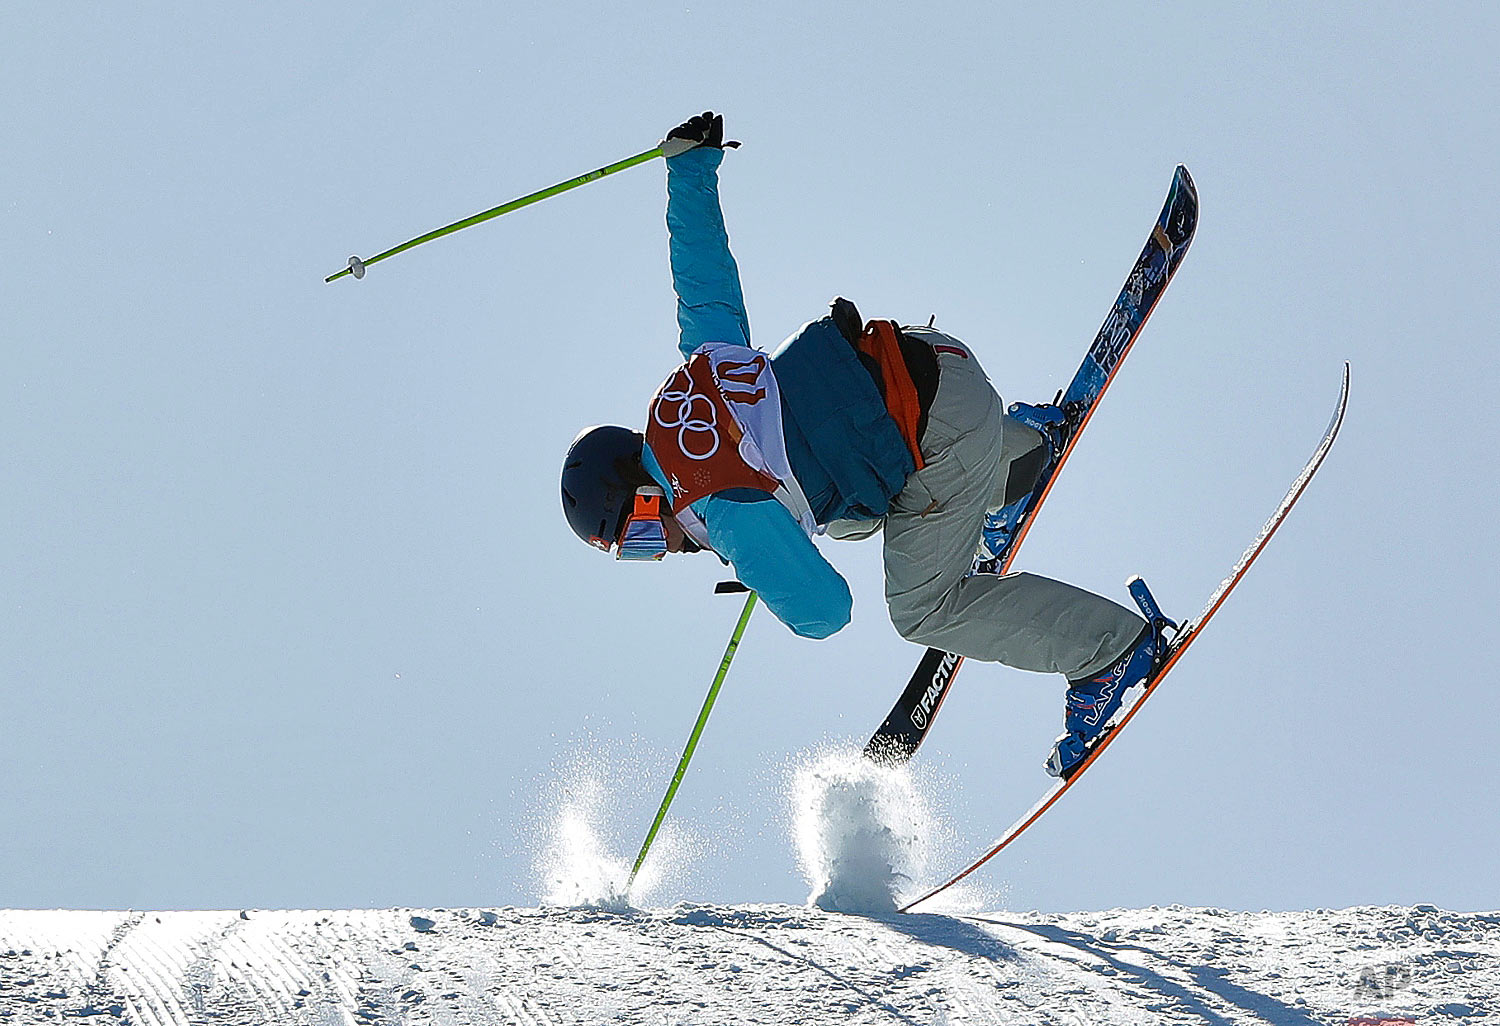 SarahHoefflin, of Switzerland, crashes during the women's slopestyle finals at Phoenix Snow Park at the 2018 Winter Olympics in Pyeongchang, South Korea, Saturday, Feb. 17, 2018. (AP Photo/Gregory Bull)